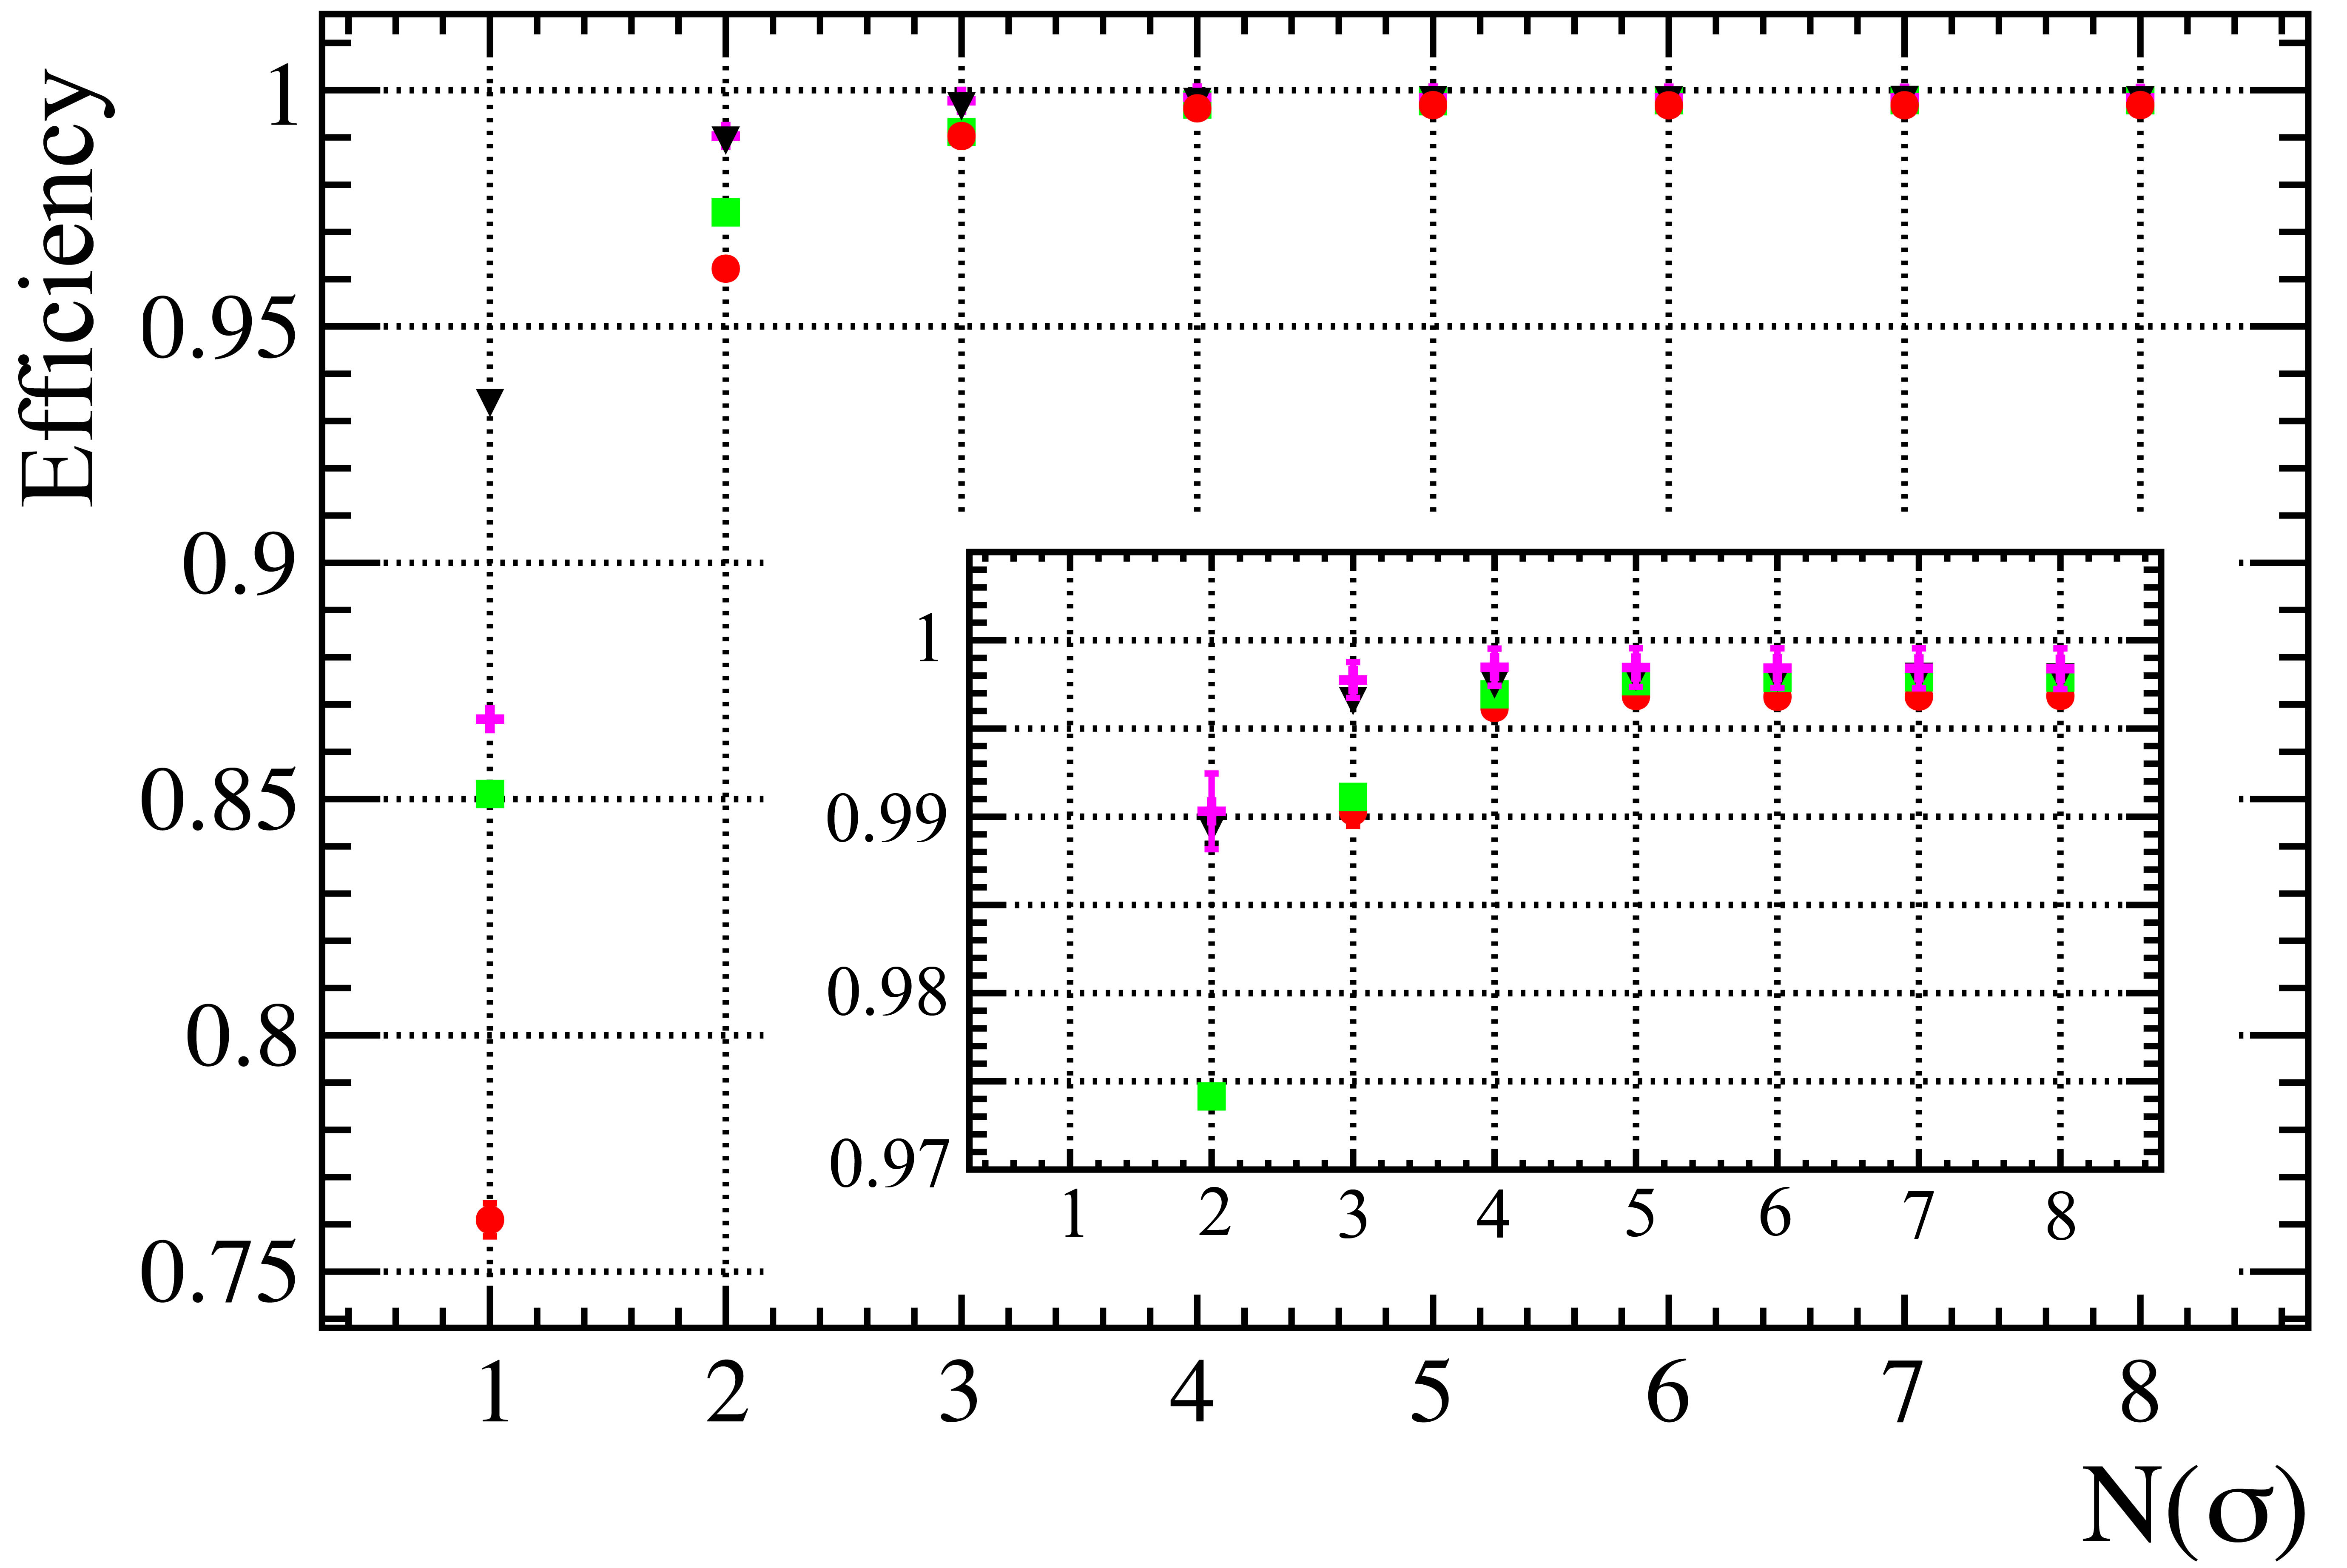 The measured efficiency of M2 station as a function of the number of